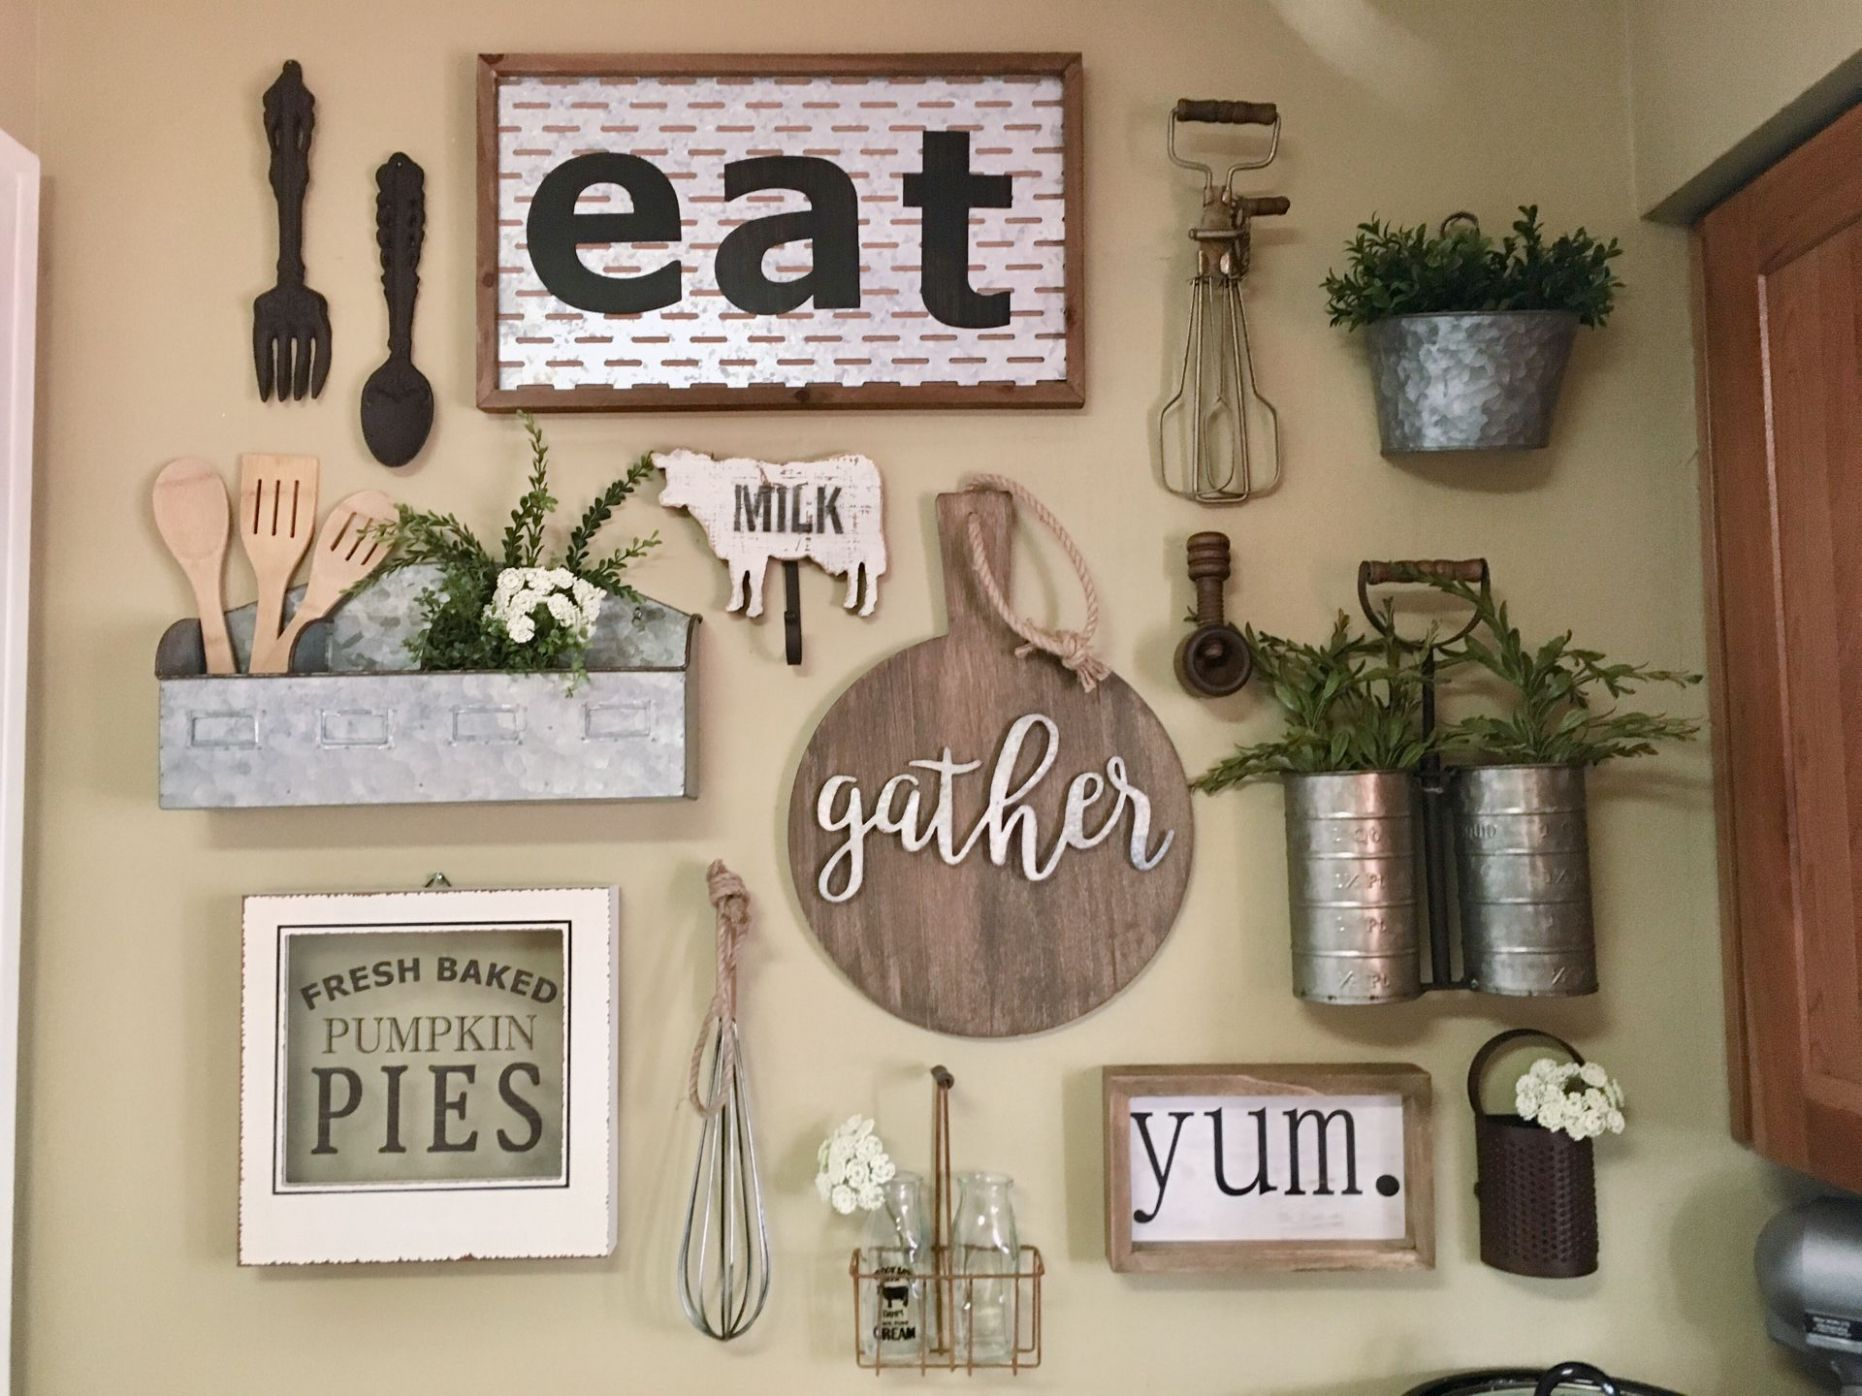 My kitchen gallery wall #KitchenDecor #GalleryWall #Farmhouse ..